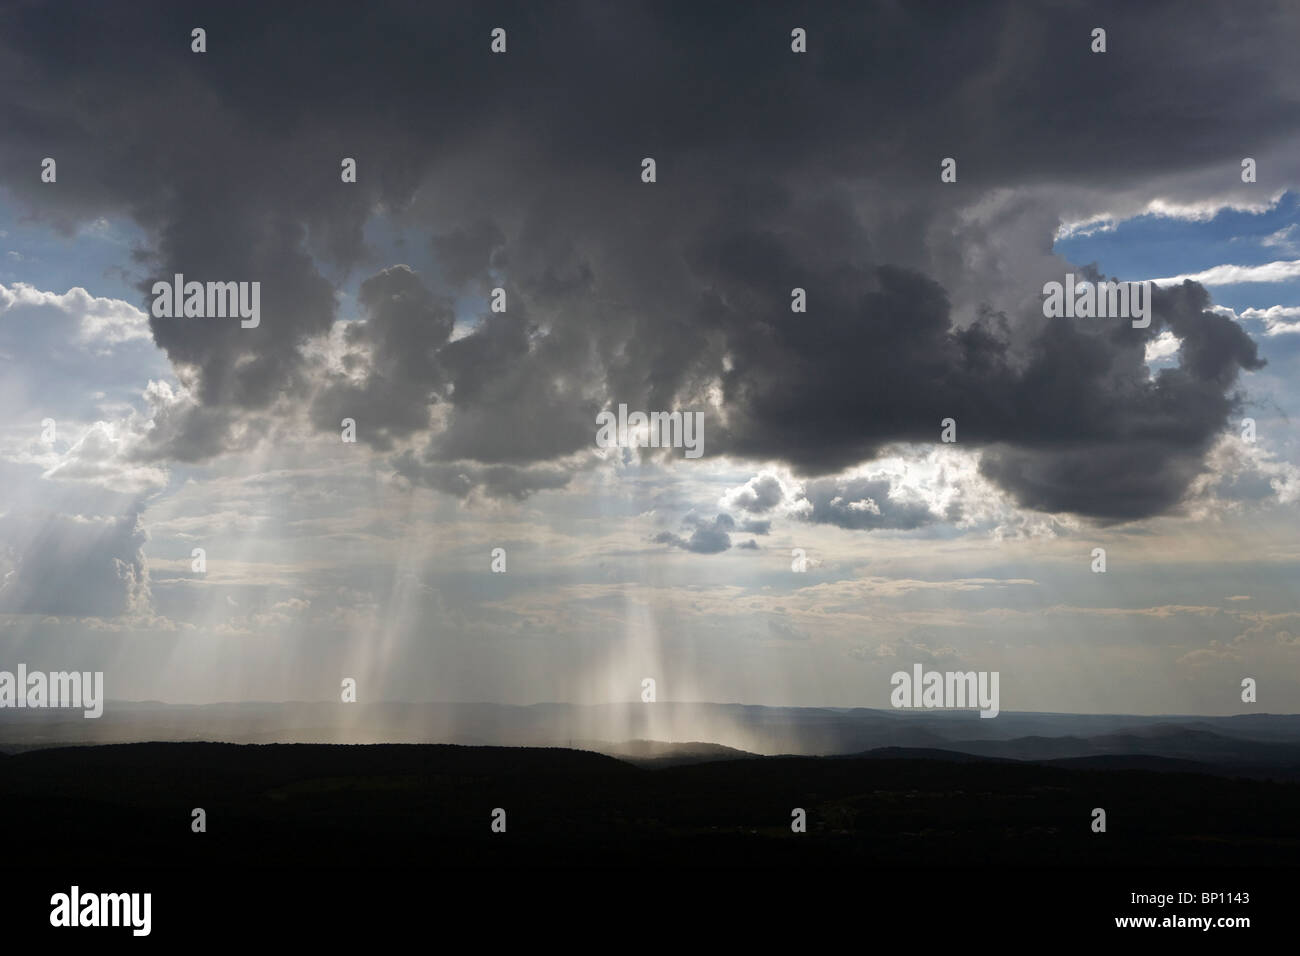 aerial view above rain showers pouring from cumulonimbus clouds outside Atlanta Georgia - Stock Image